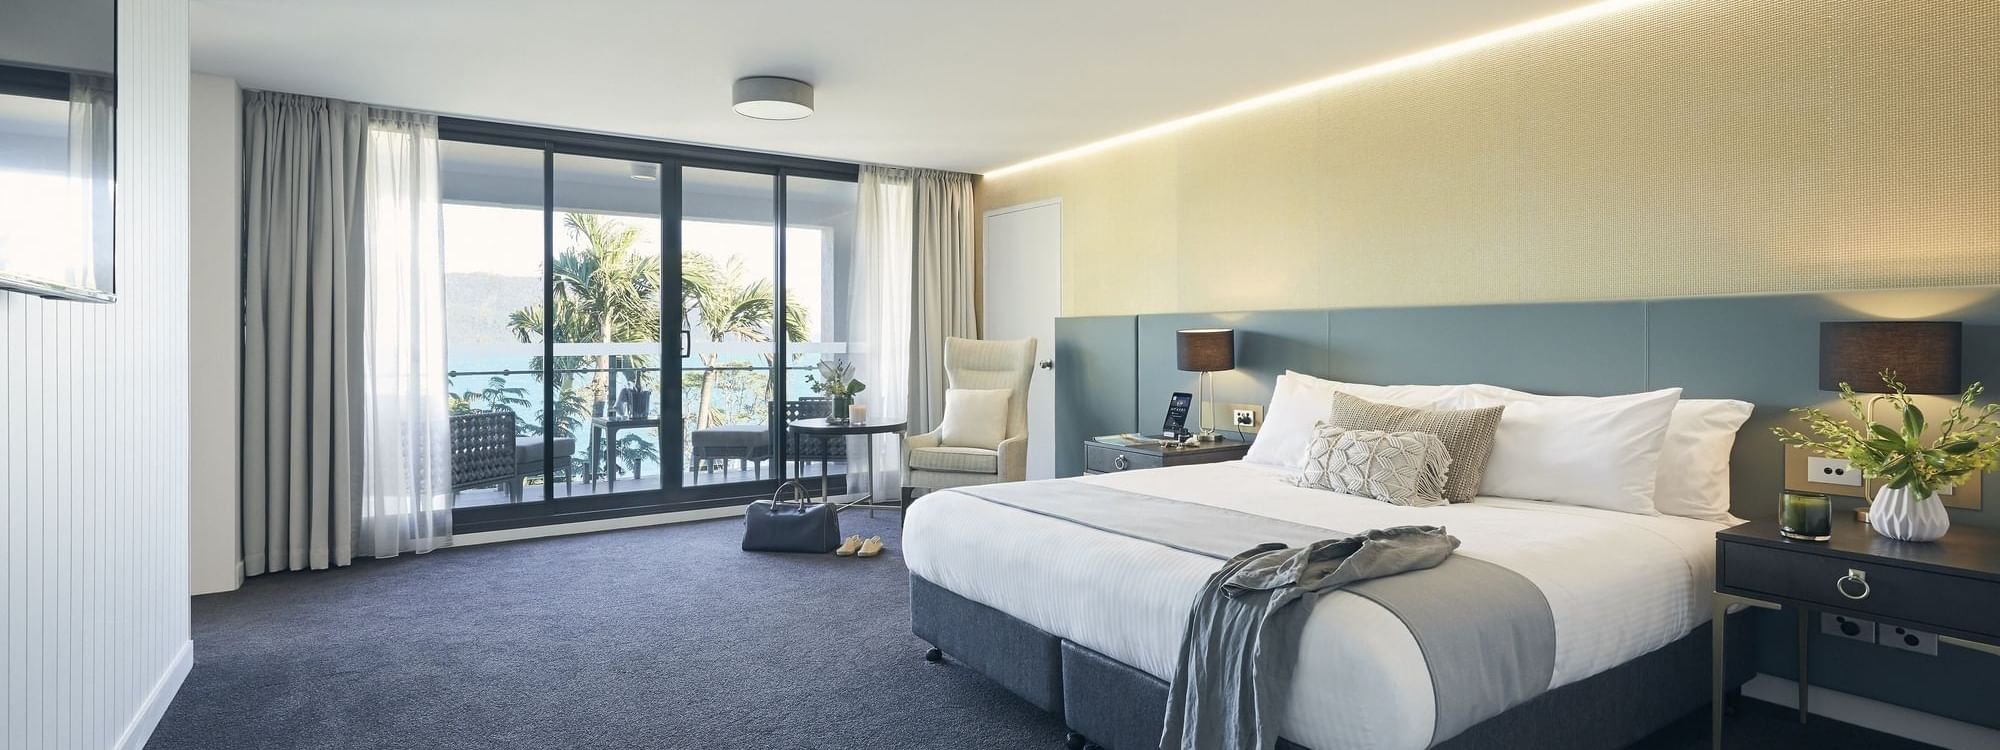 Serenity Suite with sea view terrace at Daydream Island Resort